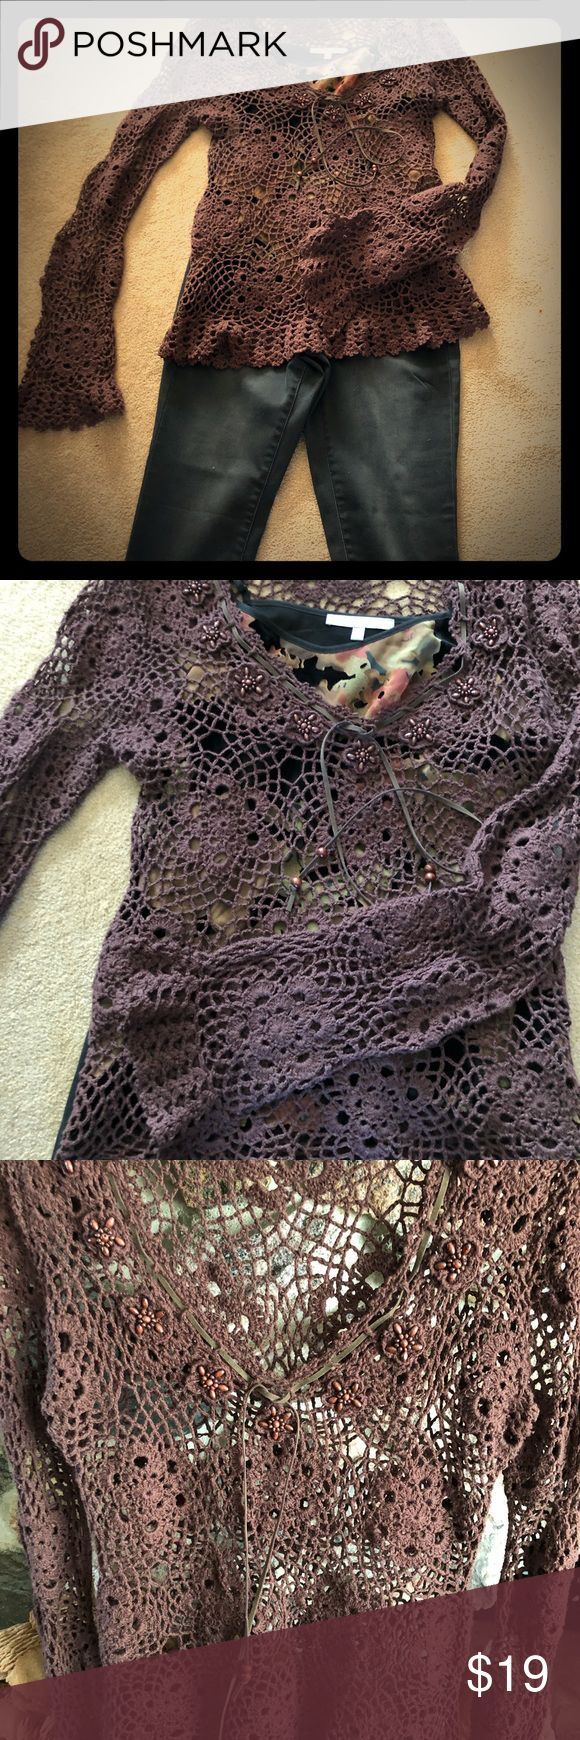 Crochet chocolate color sweater , long bell sleeve Only few times worn this pretty crochet sweater, has around neckline detailed embellishments! The nice tank top underneath is also for sale if you want to buy it together. Got a lot off compliments wearing it, now it don't fit me anymore!  Offers welcome 😘😍 Smoke free, pet free home! I cut the label out of the side, it looked ugly. , lol Say What Sweaters V-Necks